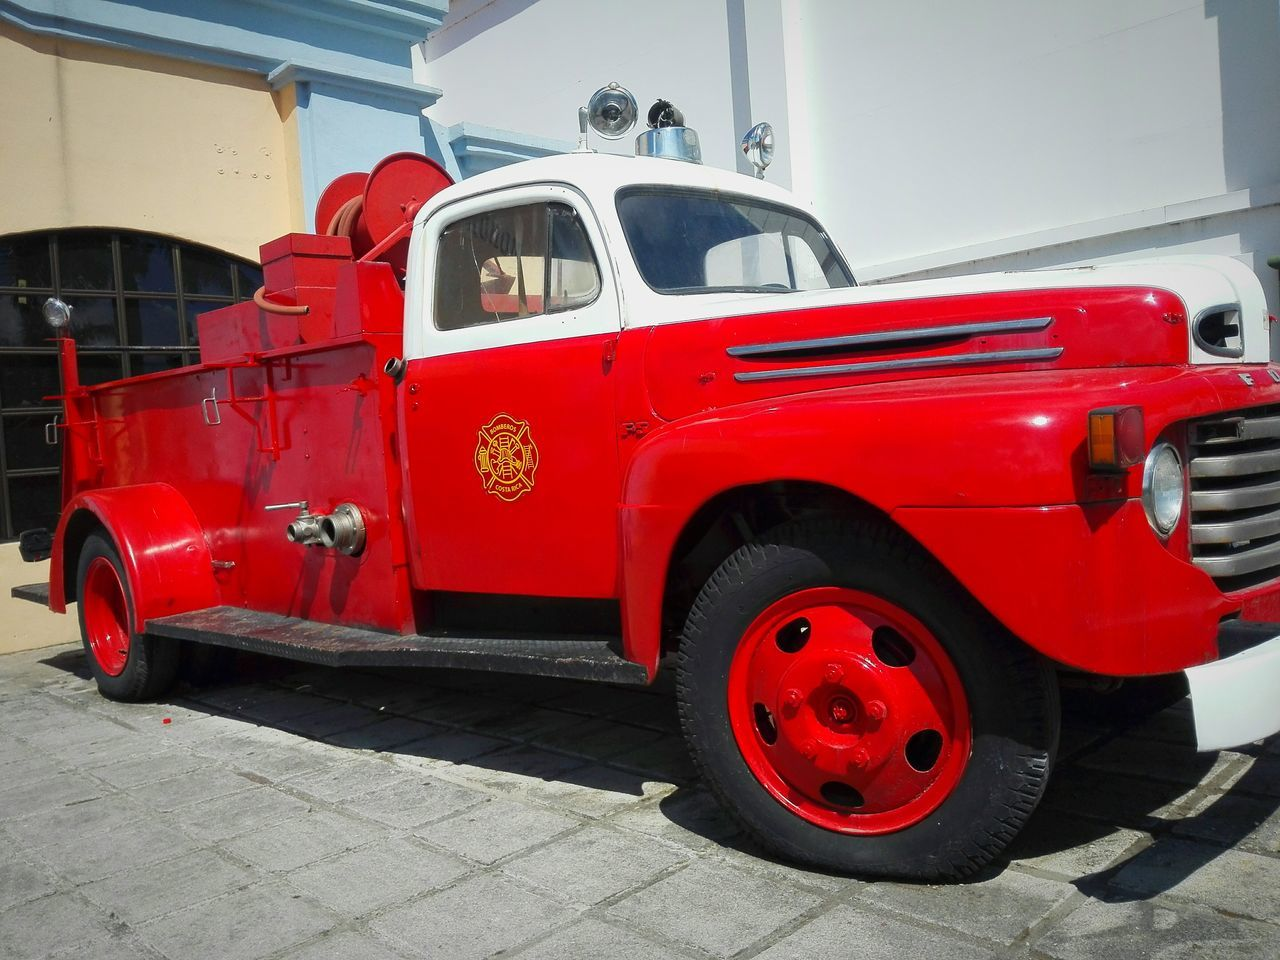 Bomberos Costa Rica Transportation Firework Automobile Clasic Cars Classic Old Vintage Cars Red Fire Engine Land Vehicle Accidents And Disasters Outdoors Day No People